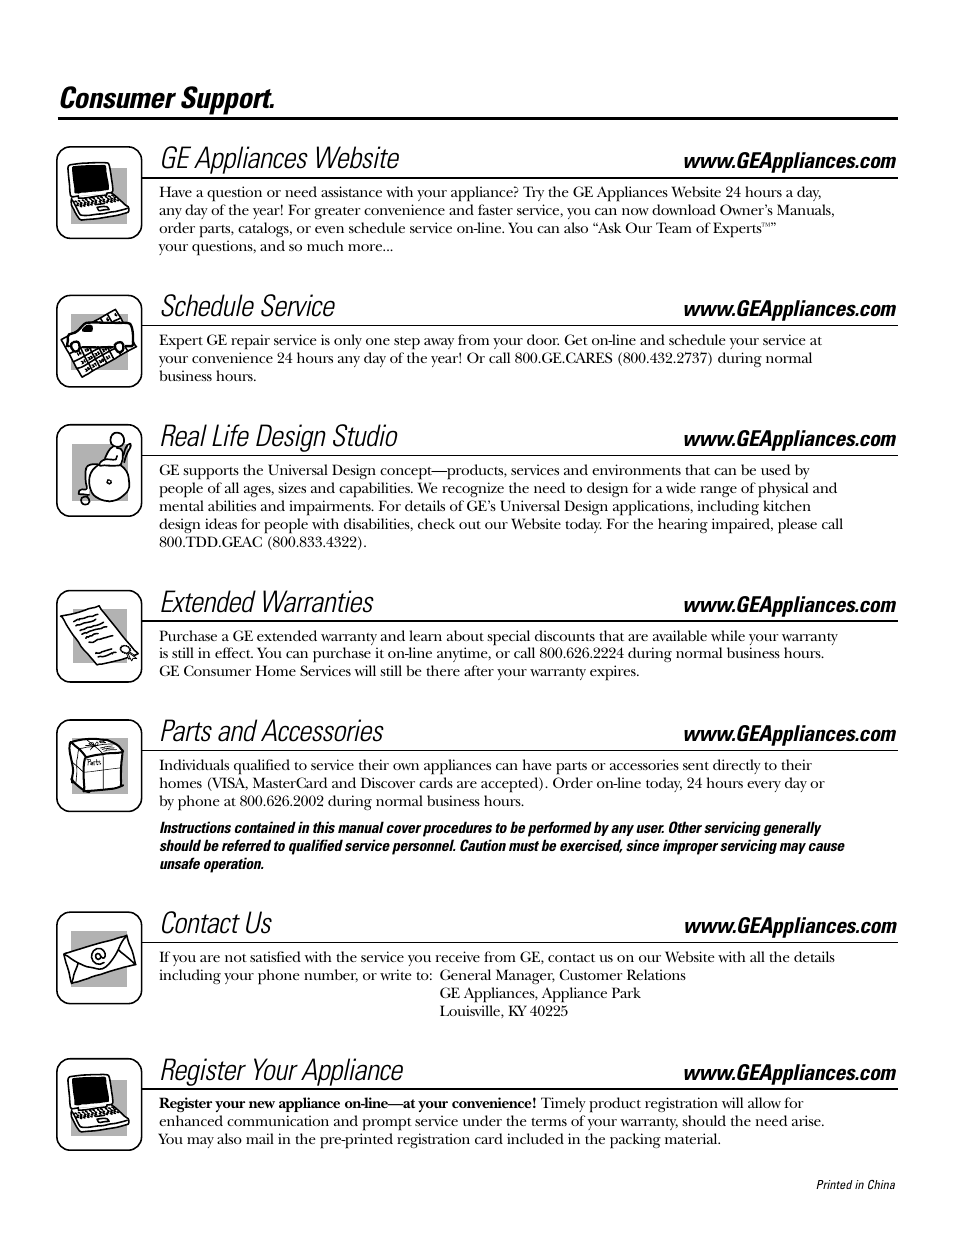 Consumer support, Consumer support       back cover